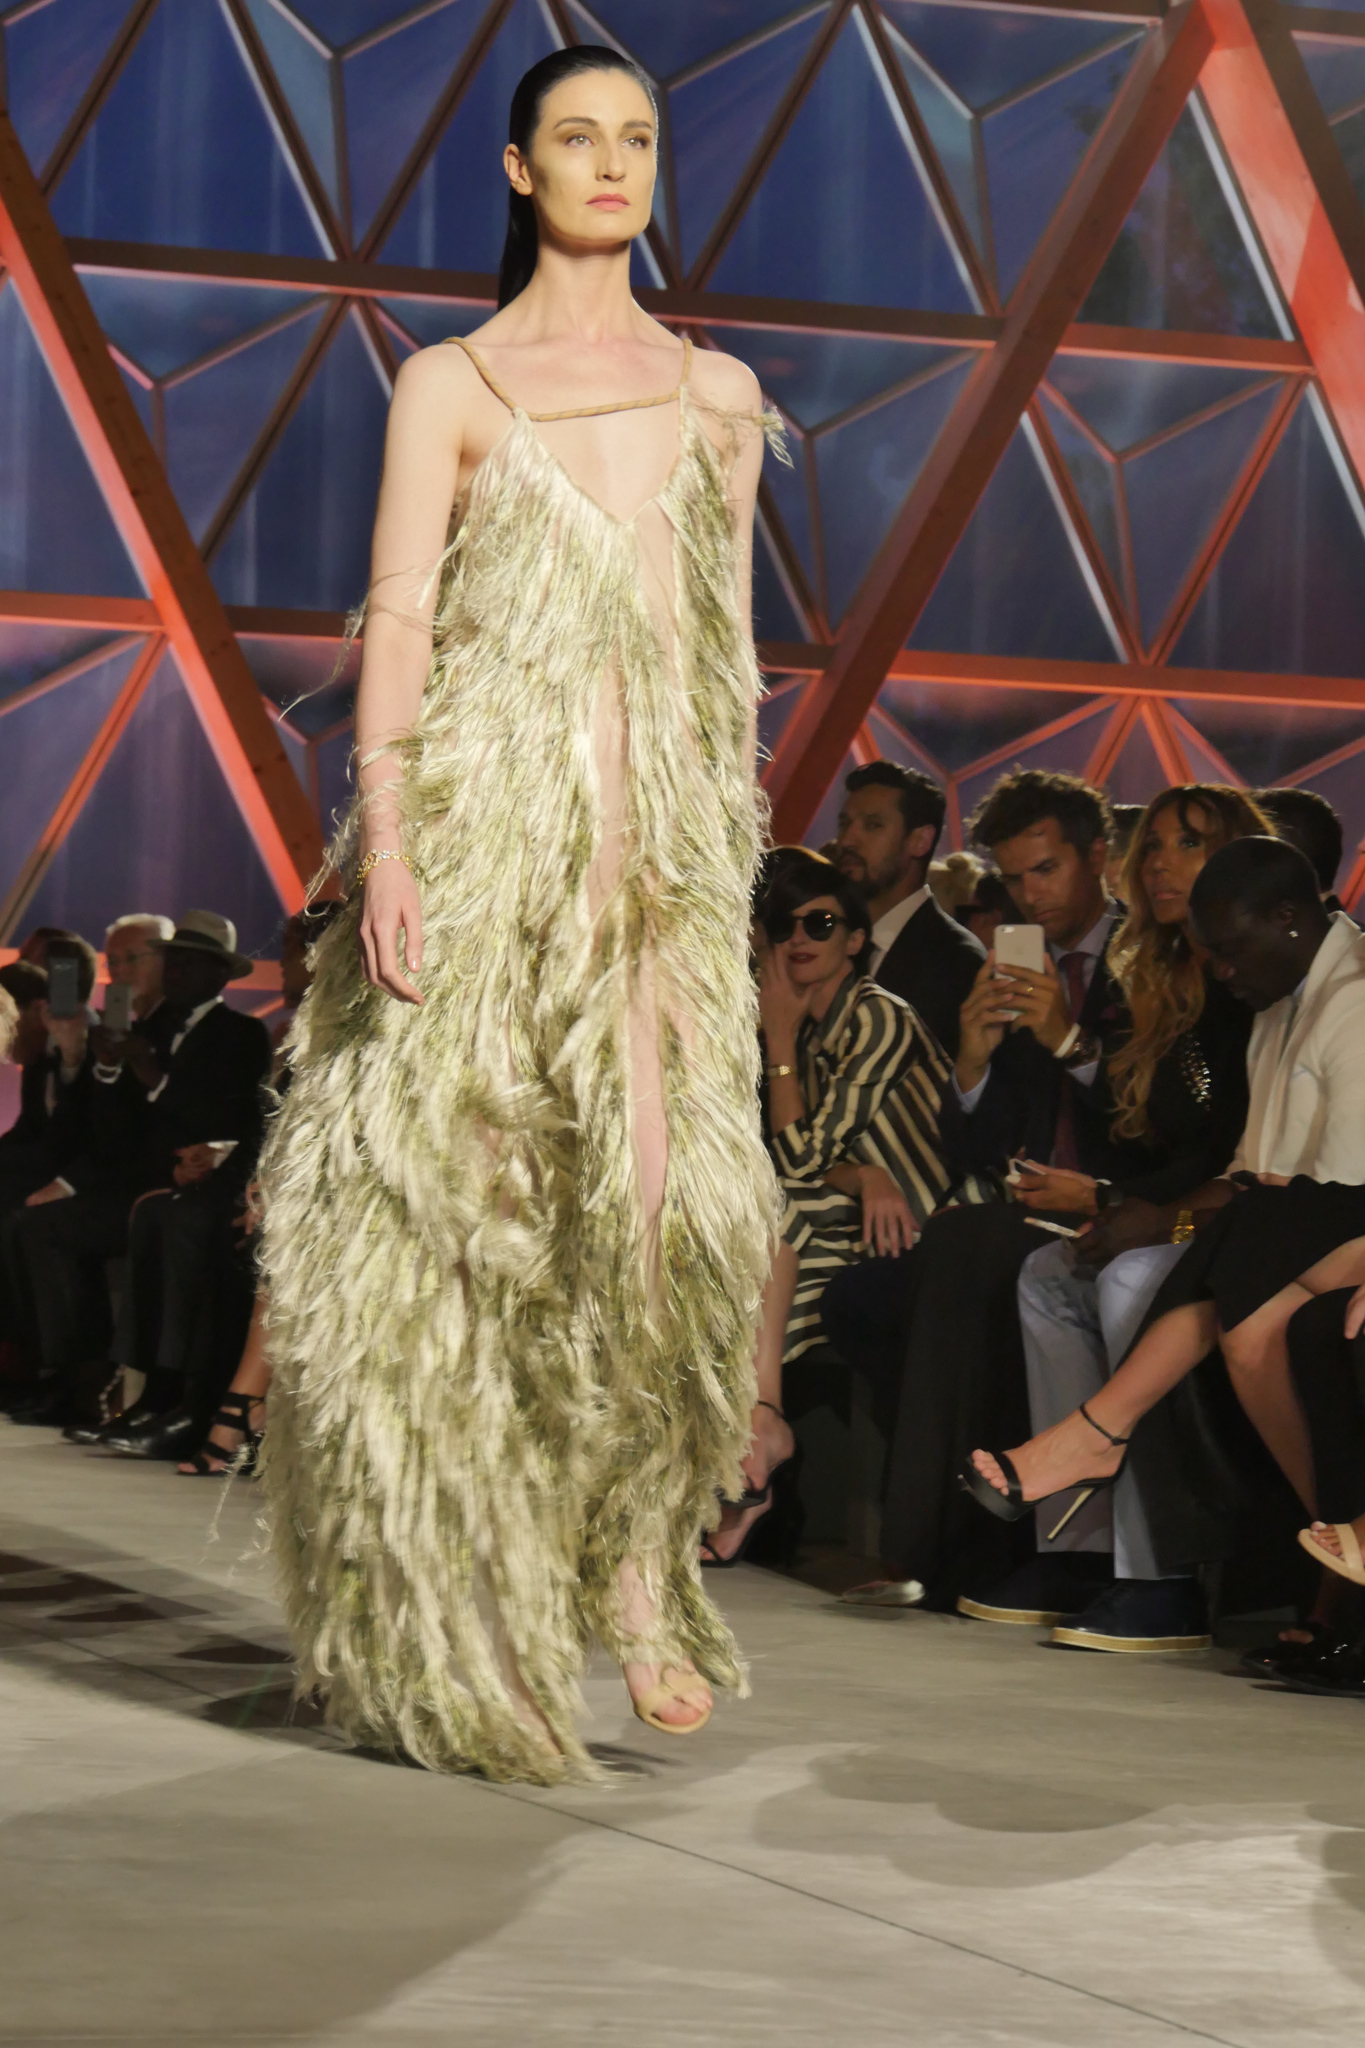 Erin O'Connor on the catwalk at the Fashion for Relief event in Cannes.